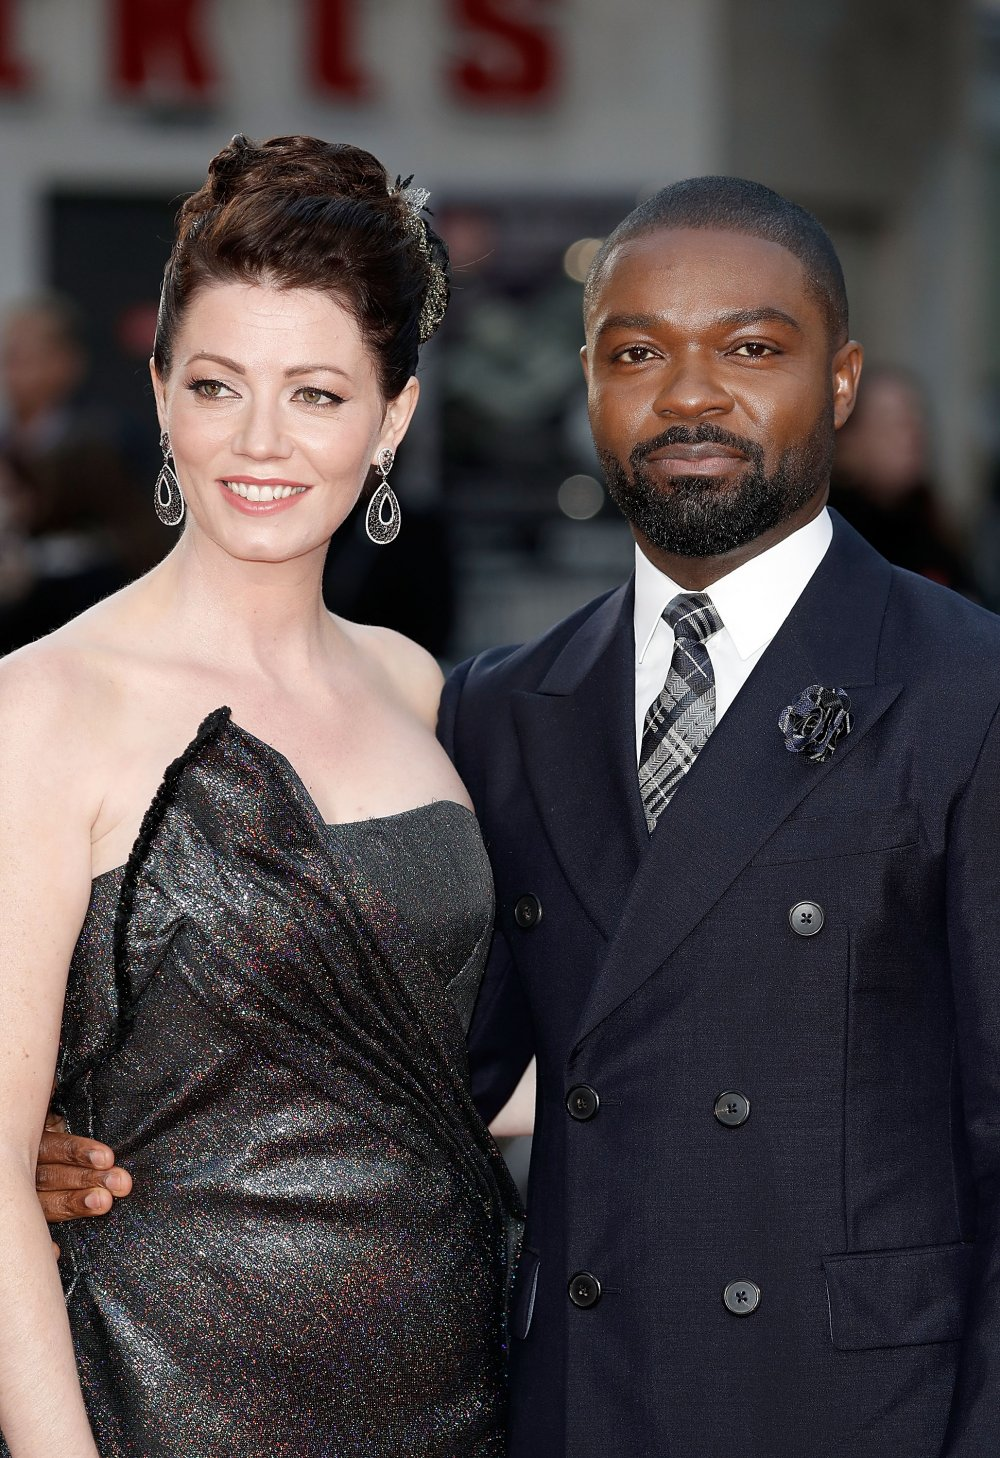 Jessica Oyelowo and David Oyelowo attend the A United Kingdom Opening Night Gala screening during the 60th BFI London Film Festival